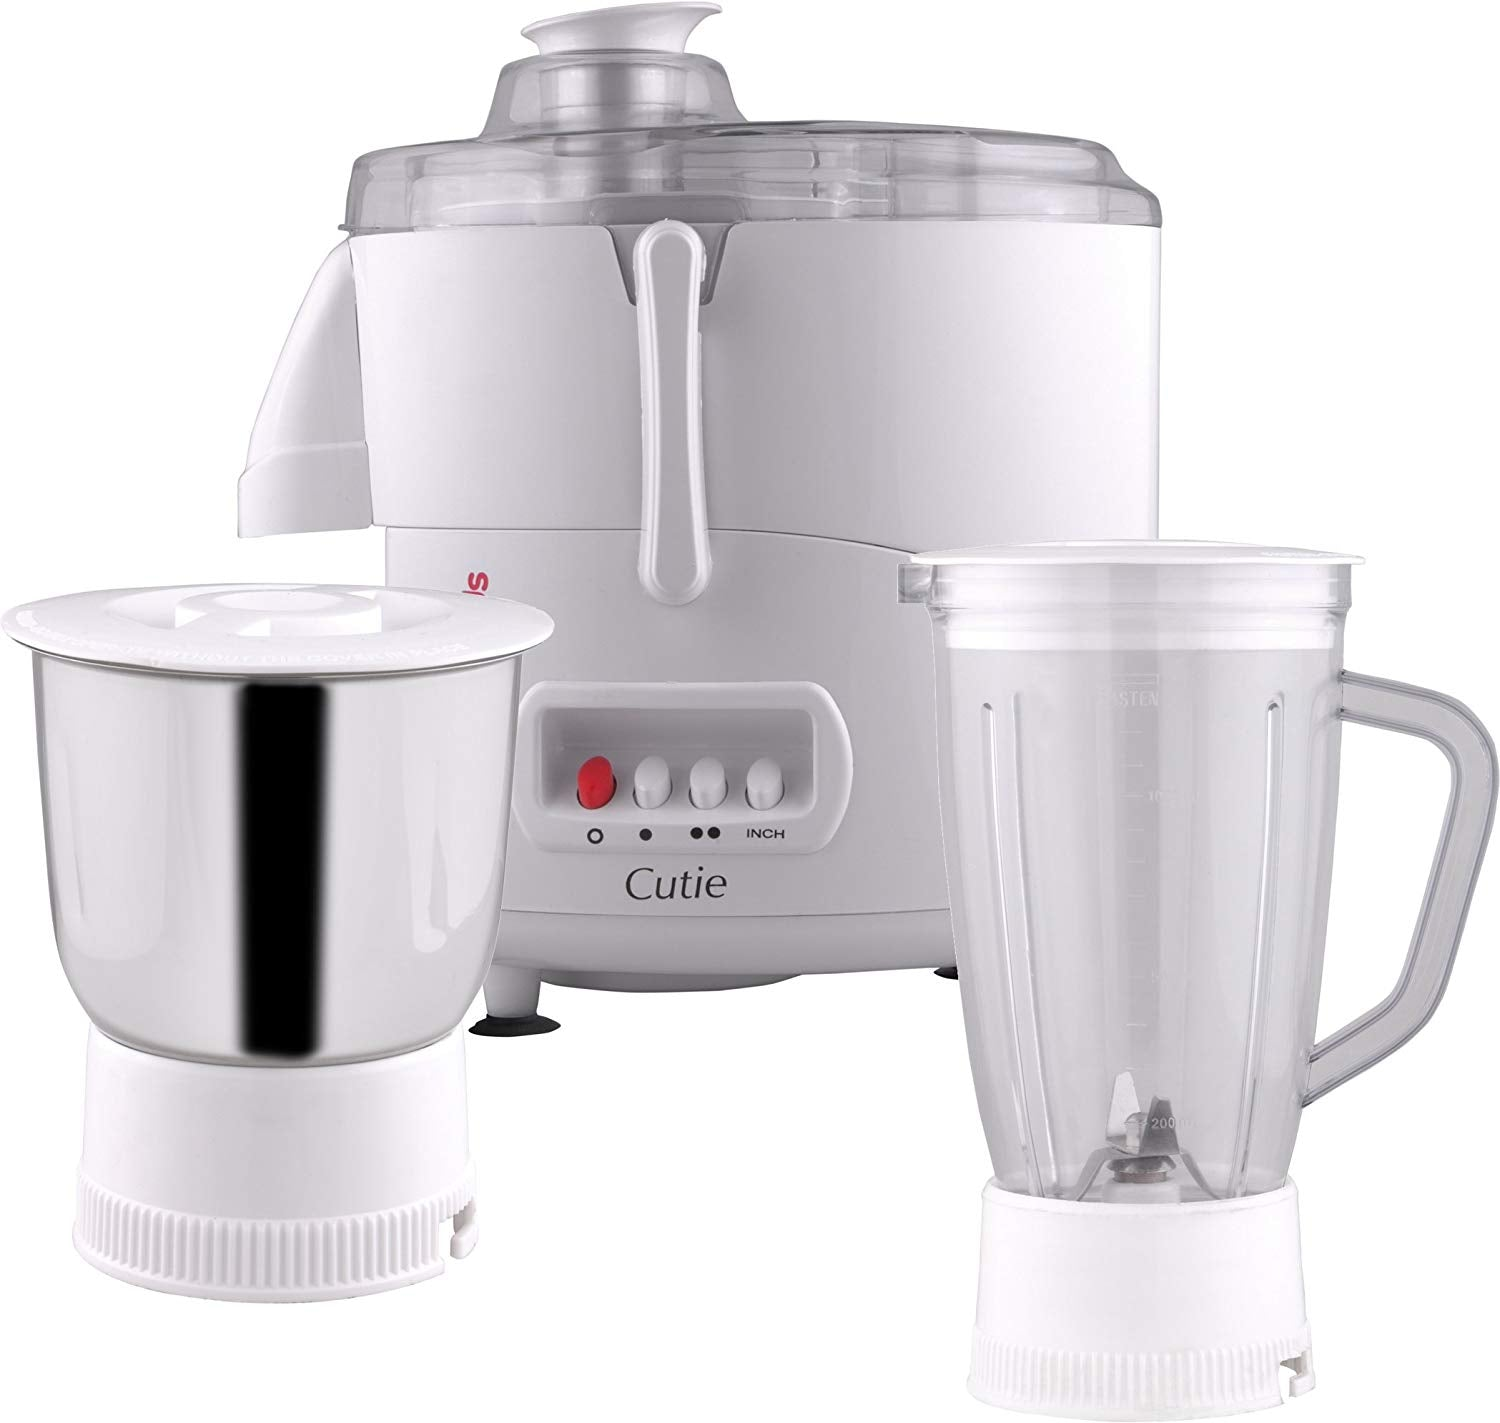 Morphy Richards Cutie Juicer Mixer Grinderget best offers deals free and coupons online at buythevalue.in